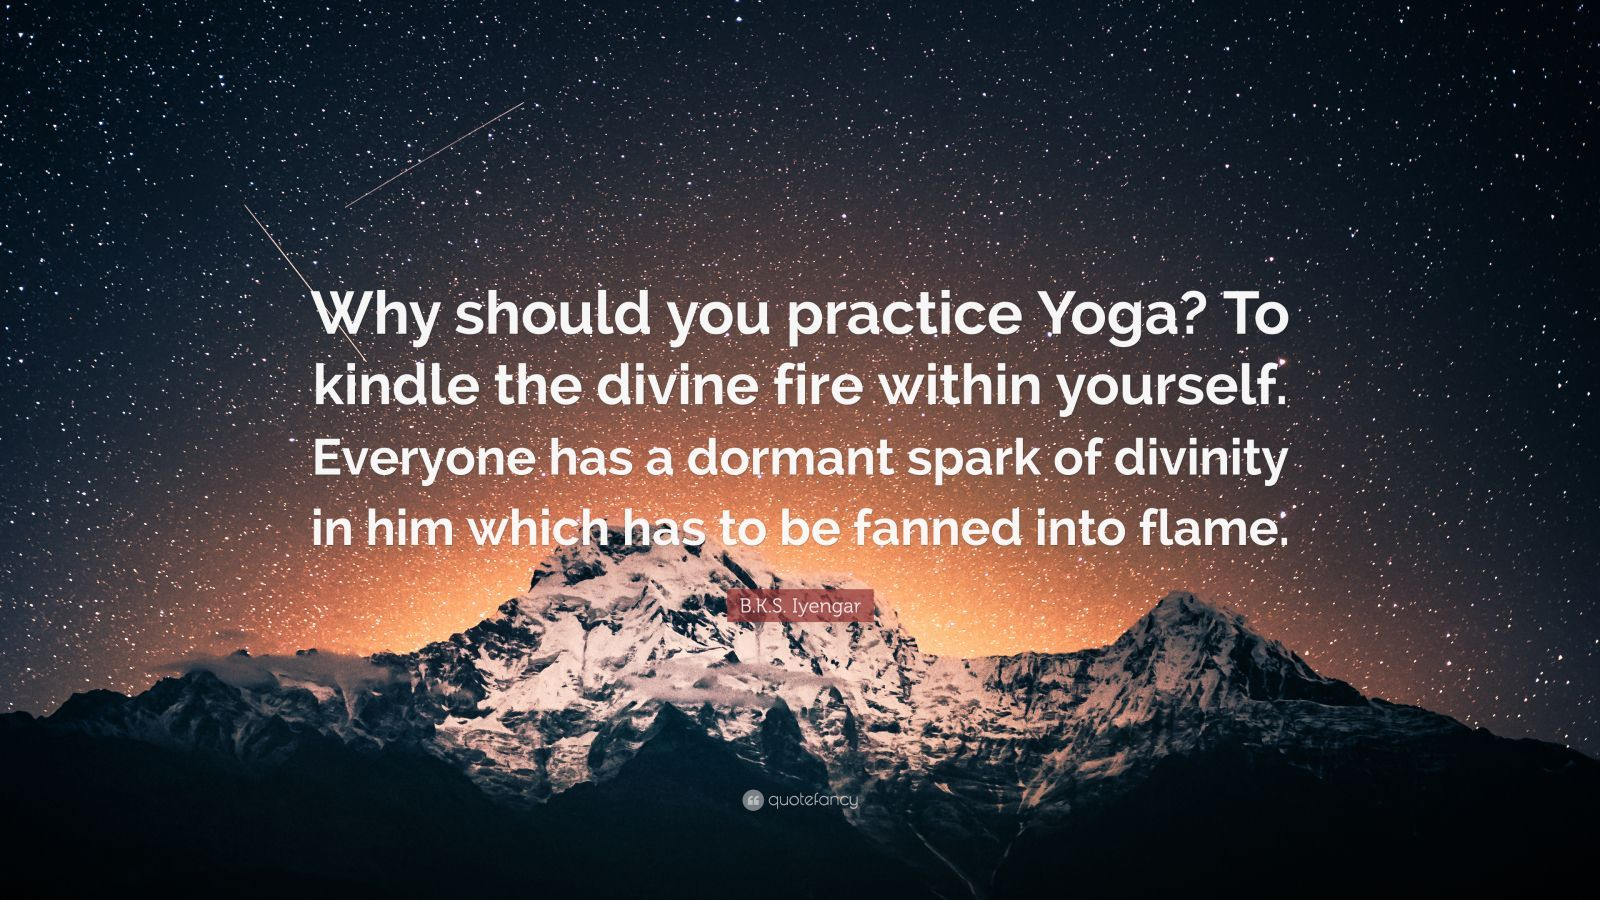 B K S Iyengar Quote Why Should You Practice Yoga To Kindle The Divine Fi Inspirational Quotes Wallpapers Inspirational Quotes Motivational Quotes Wallpaper